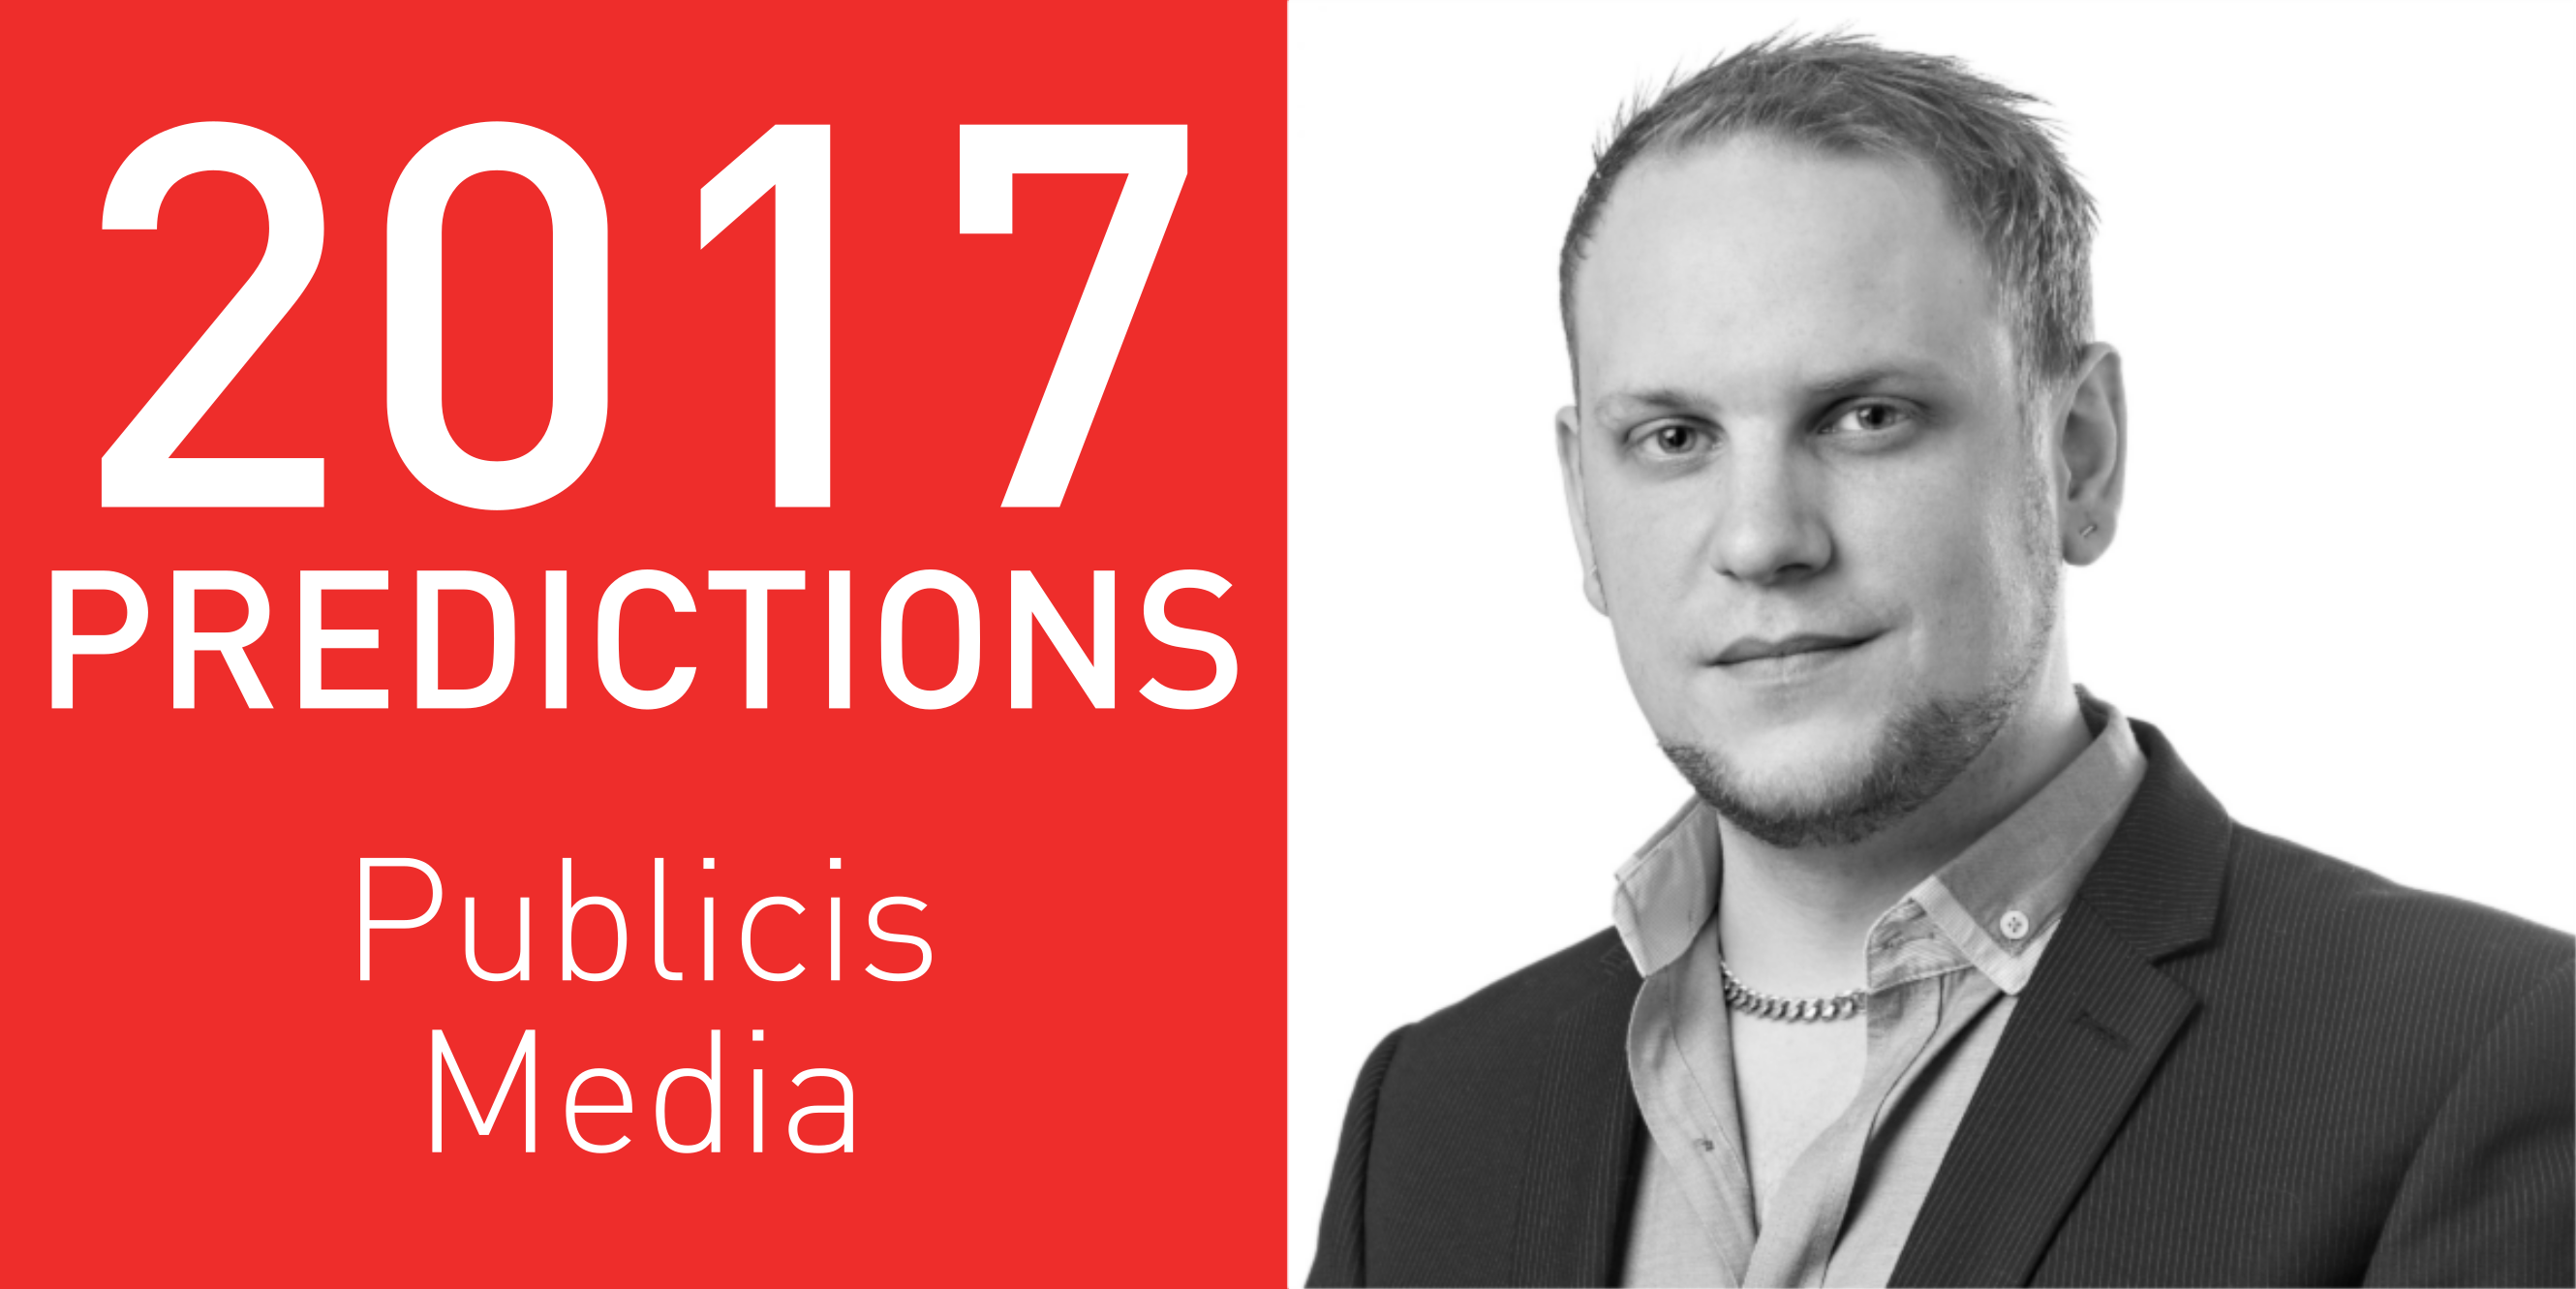 2017 predictions Publicis Media